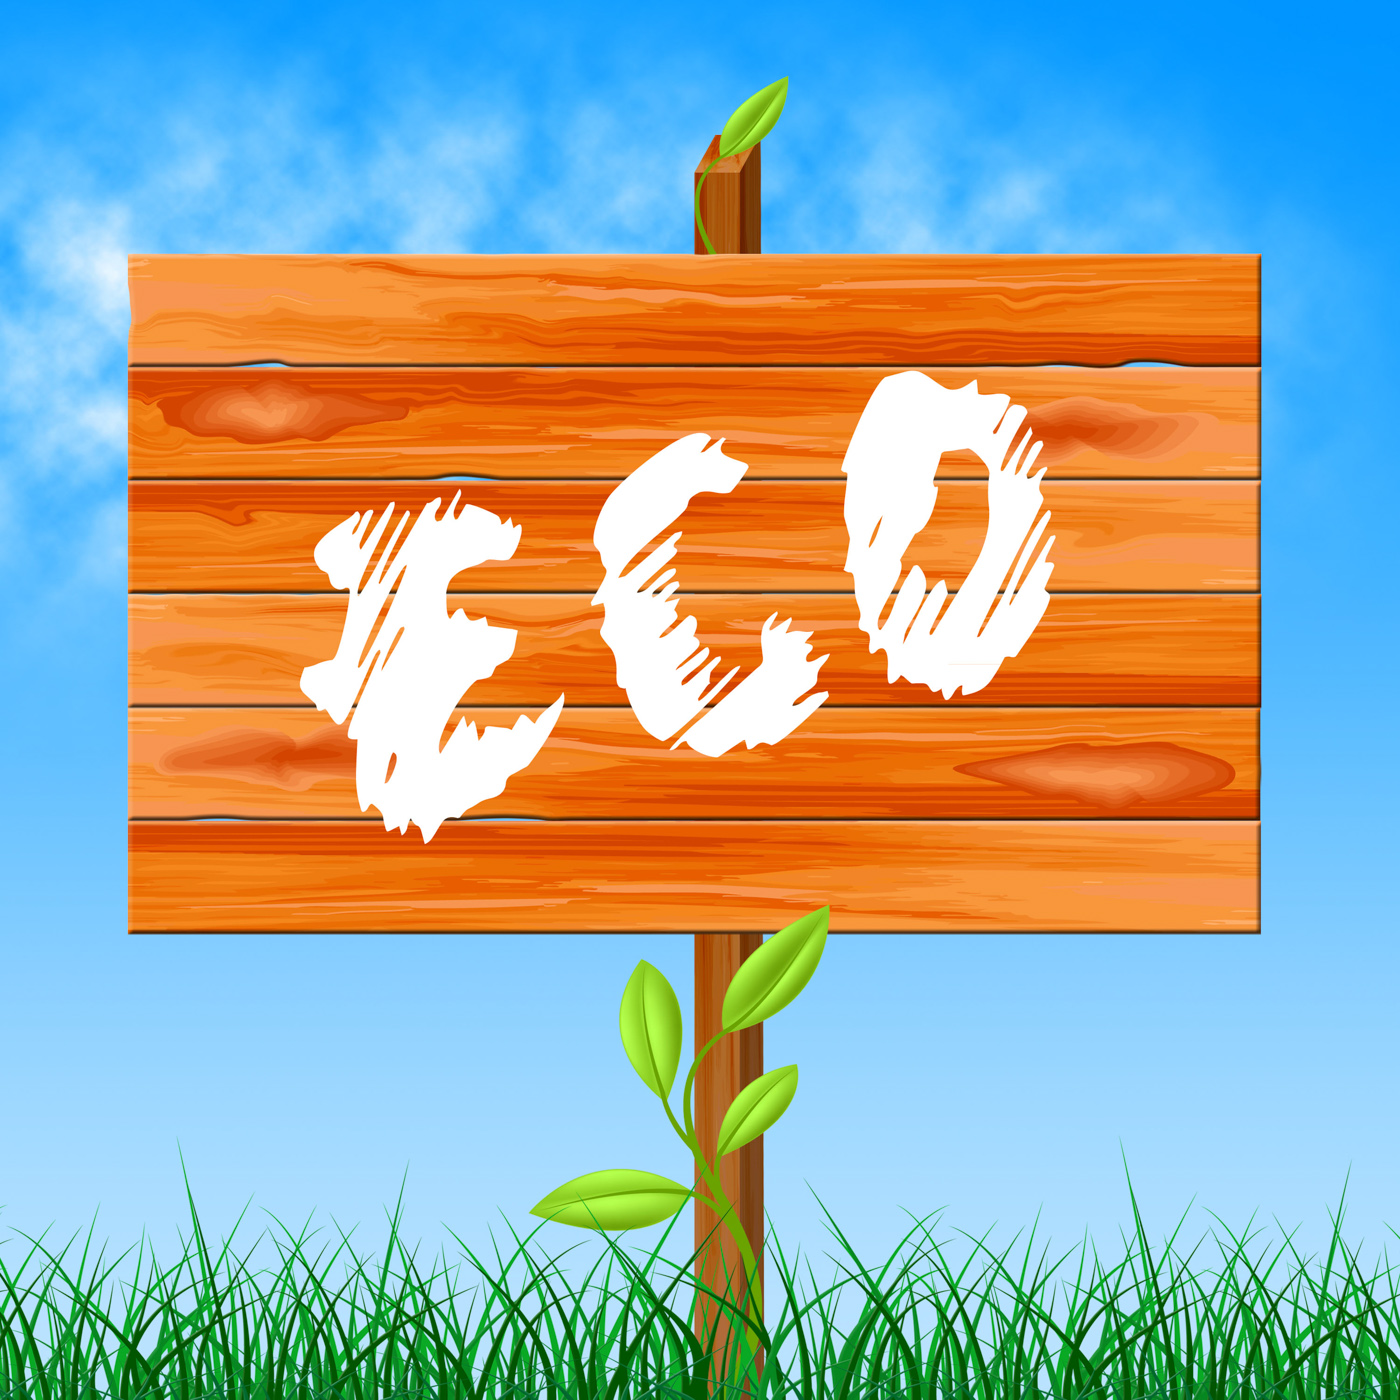 Eco Friendly Represents Go Green And Eco-Friendly, Nature, Natural, Green, Planet, HQ Photo